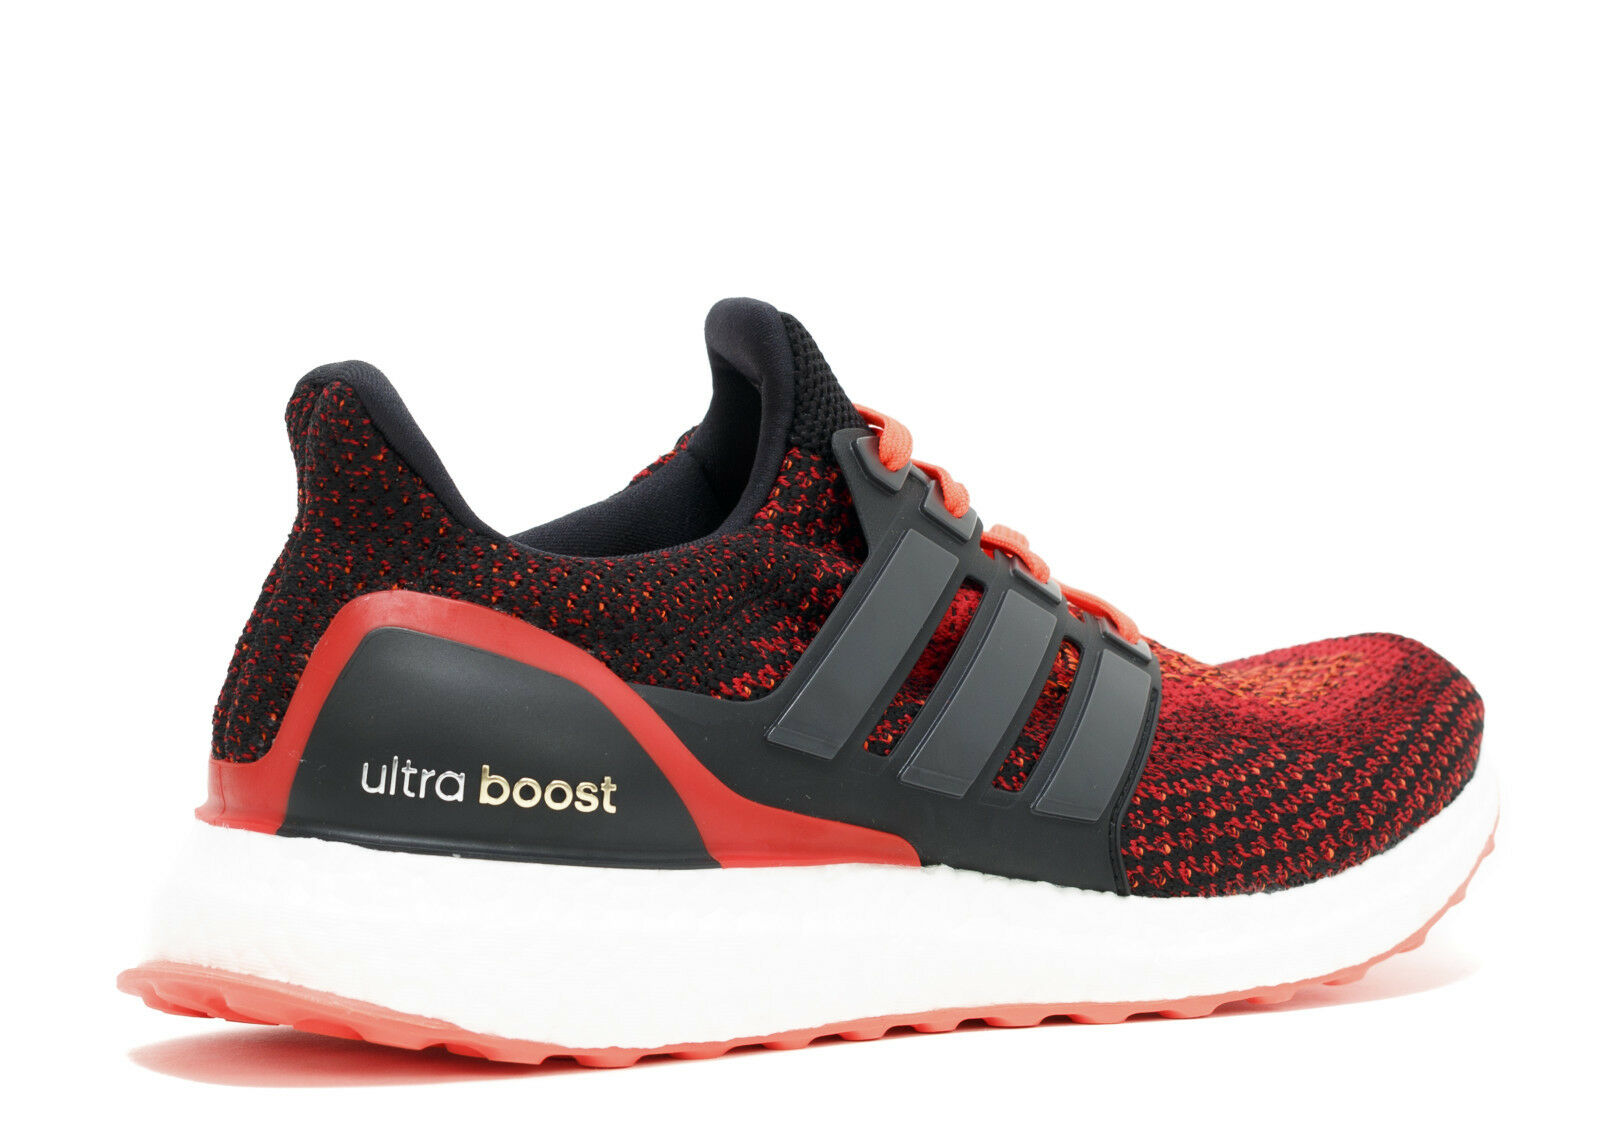 Adidas Rouge/Core Ultra Boost 2.0 M solaire Rouge/Core Adidas Noir/Blanc Noir/Rouge aq5930 7a327a